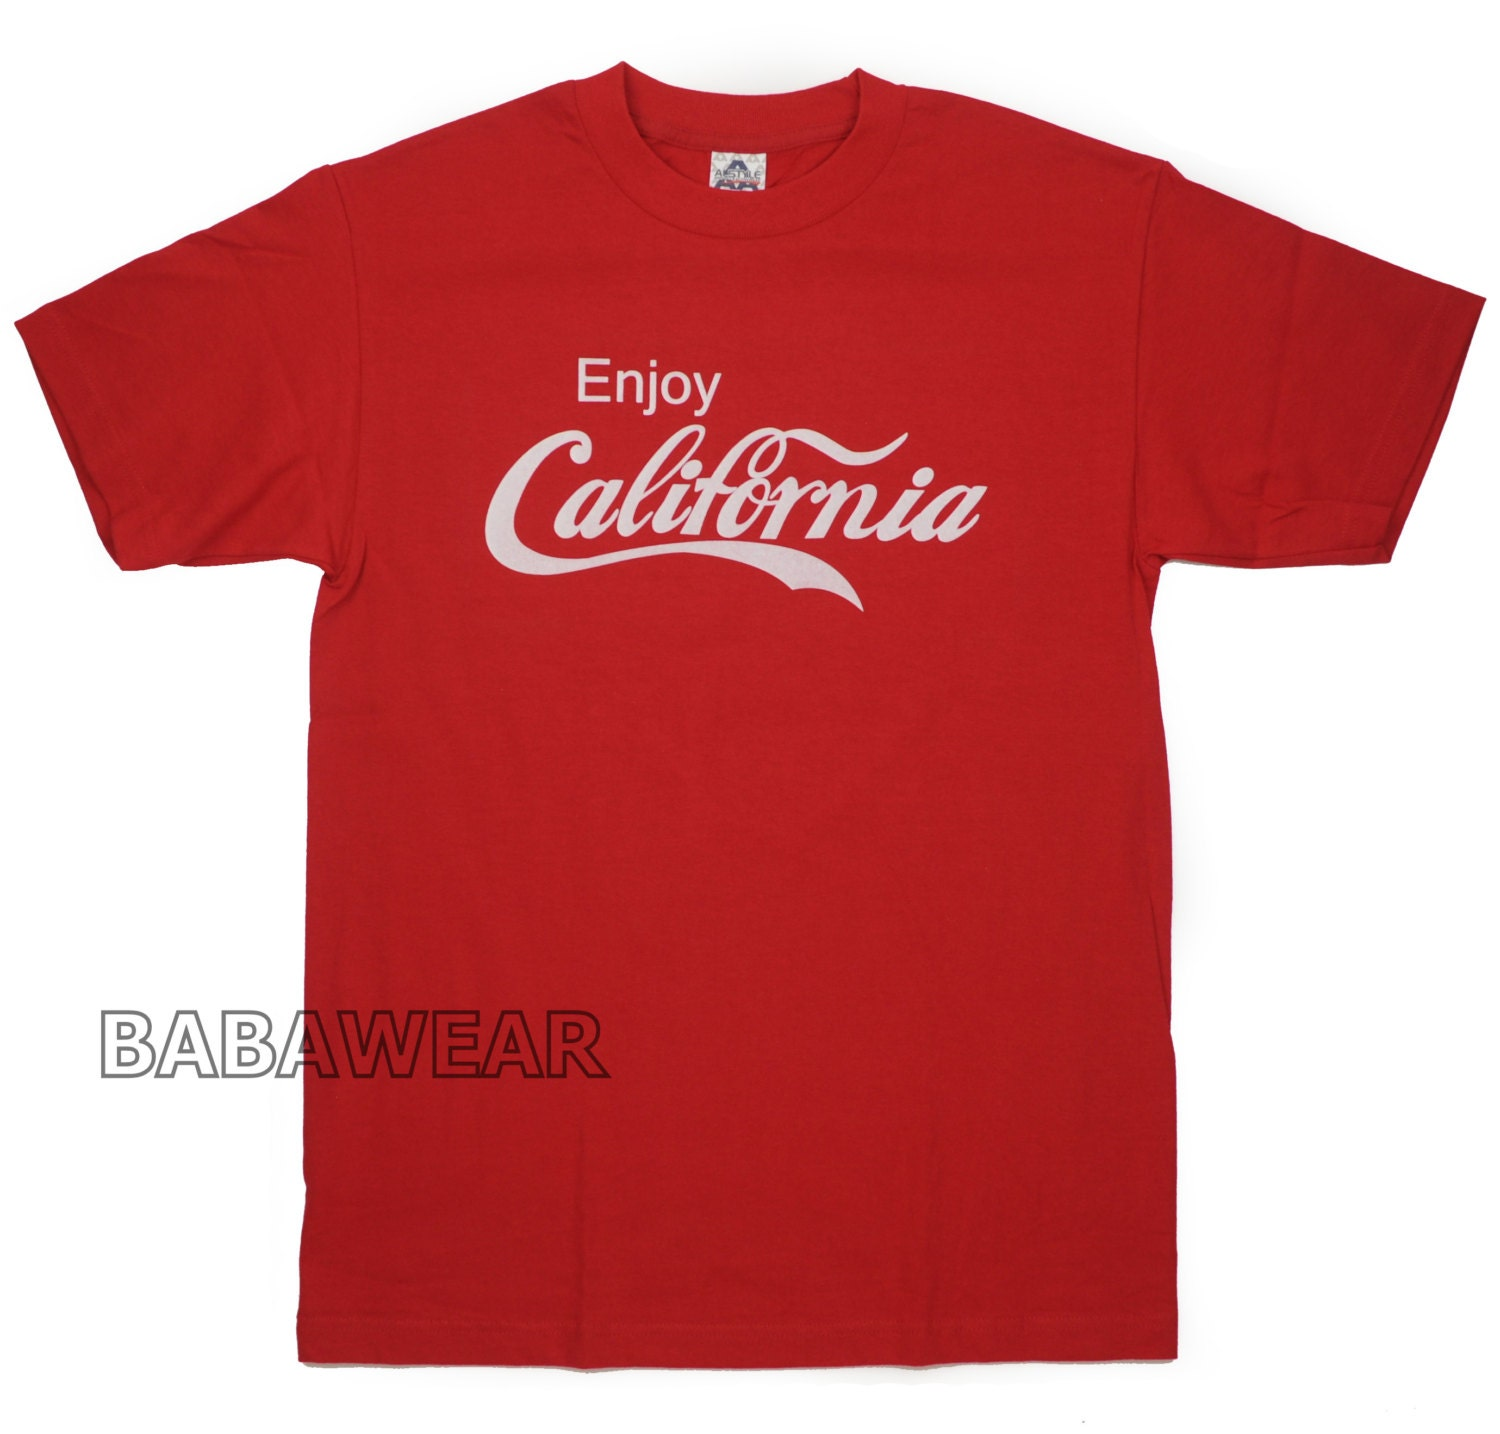 enjoy california coca cola t shirt cali red coke. Black Bedroom Furniture Sets. Home Design Ideas